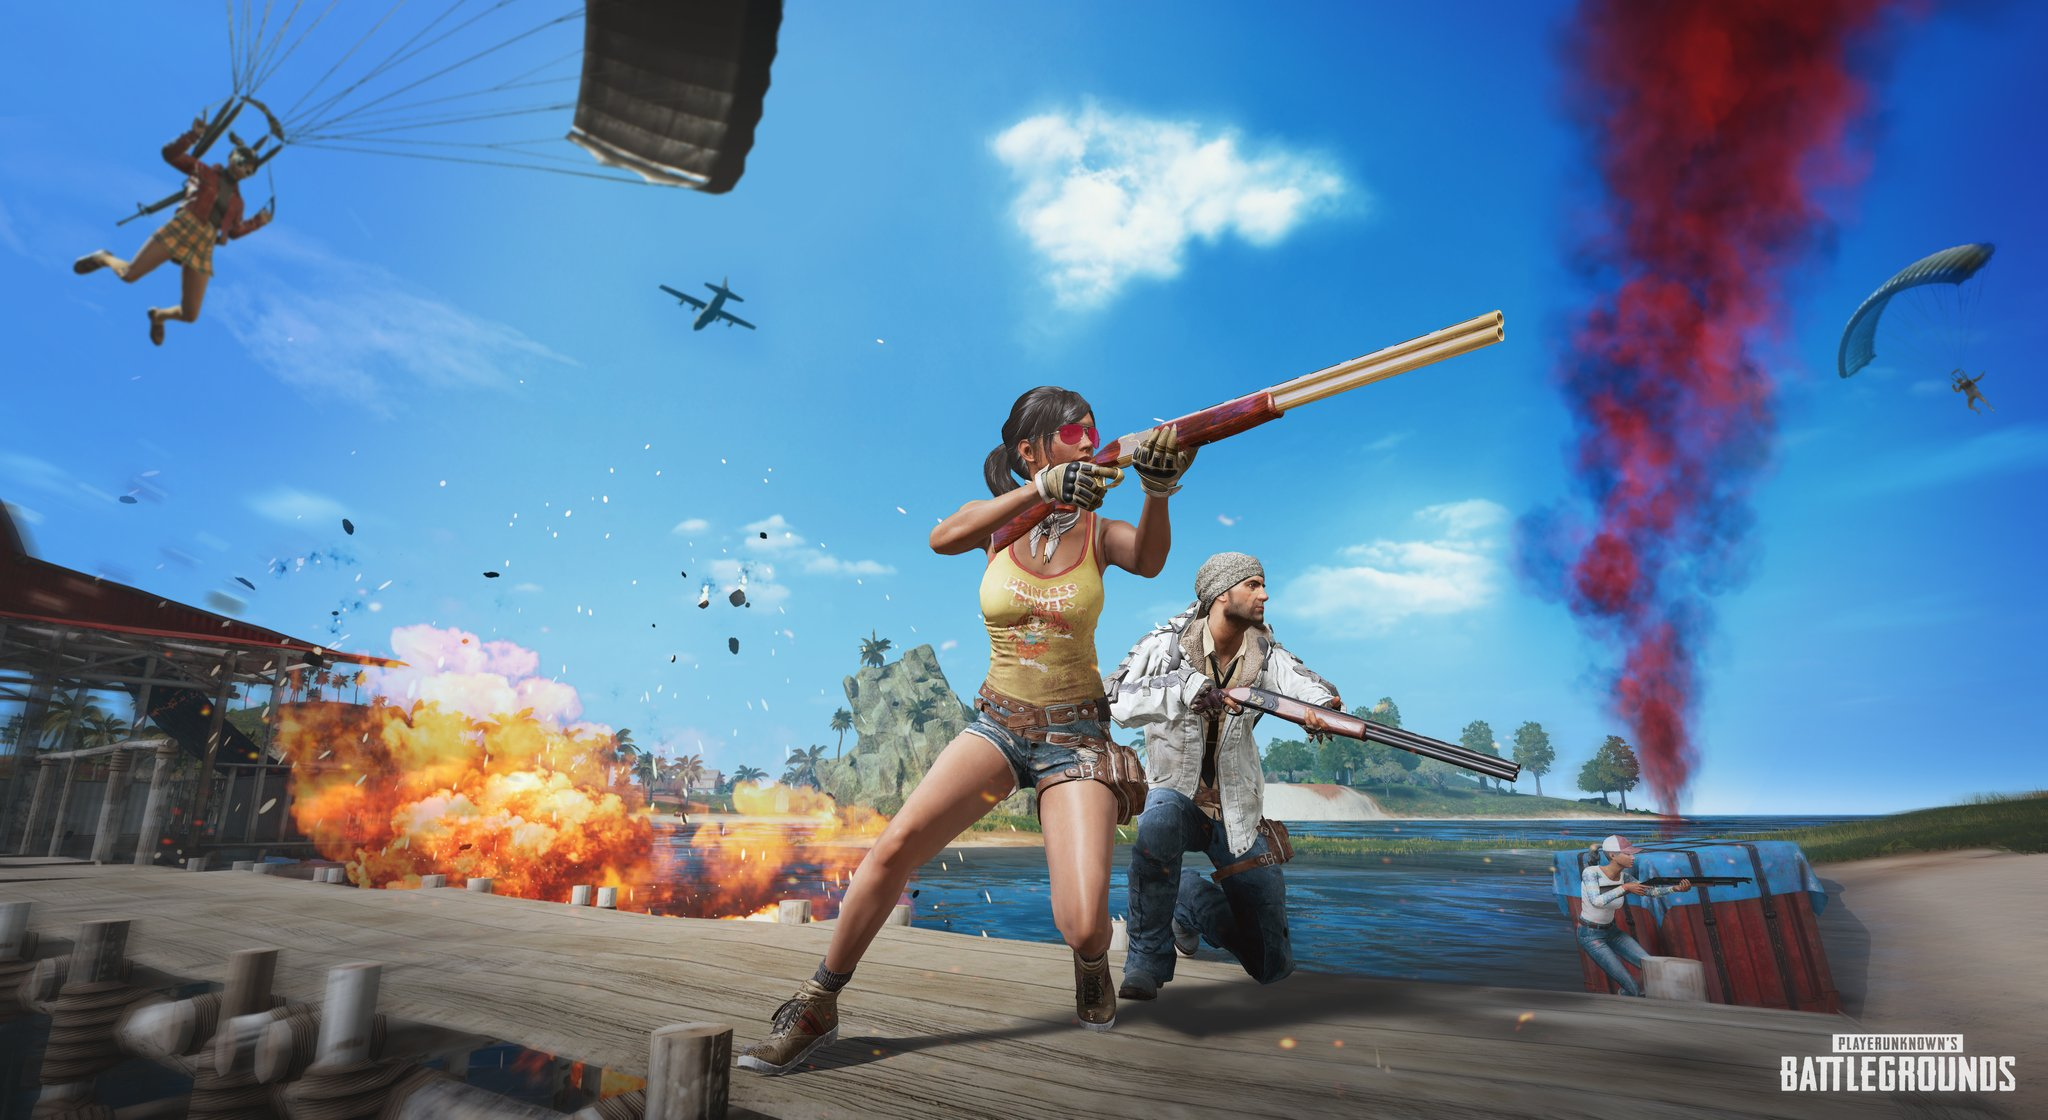 How To Get Pubg Game For Mobile Pc And Laptop For Free